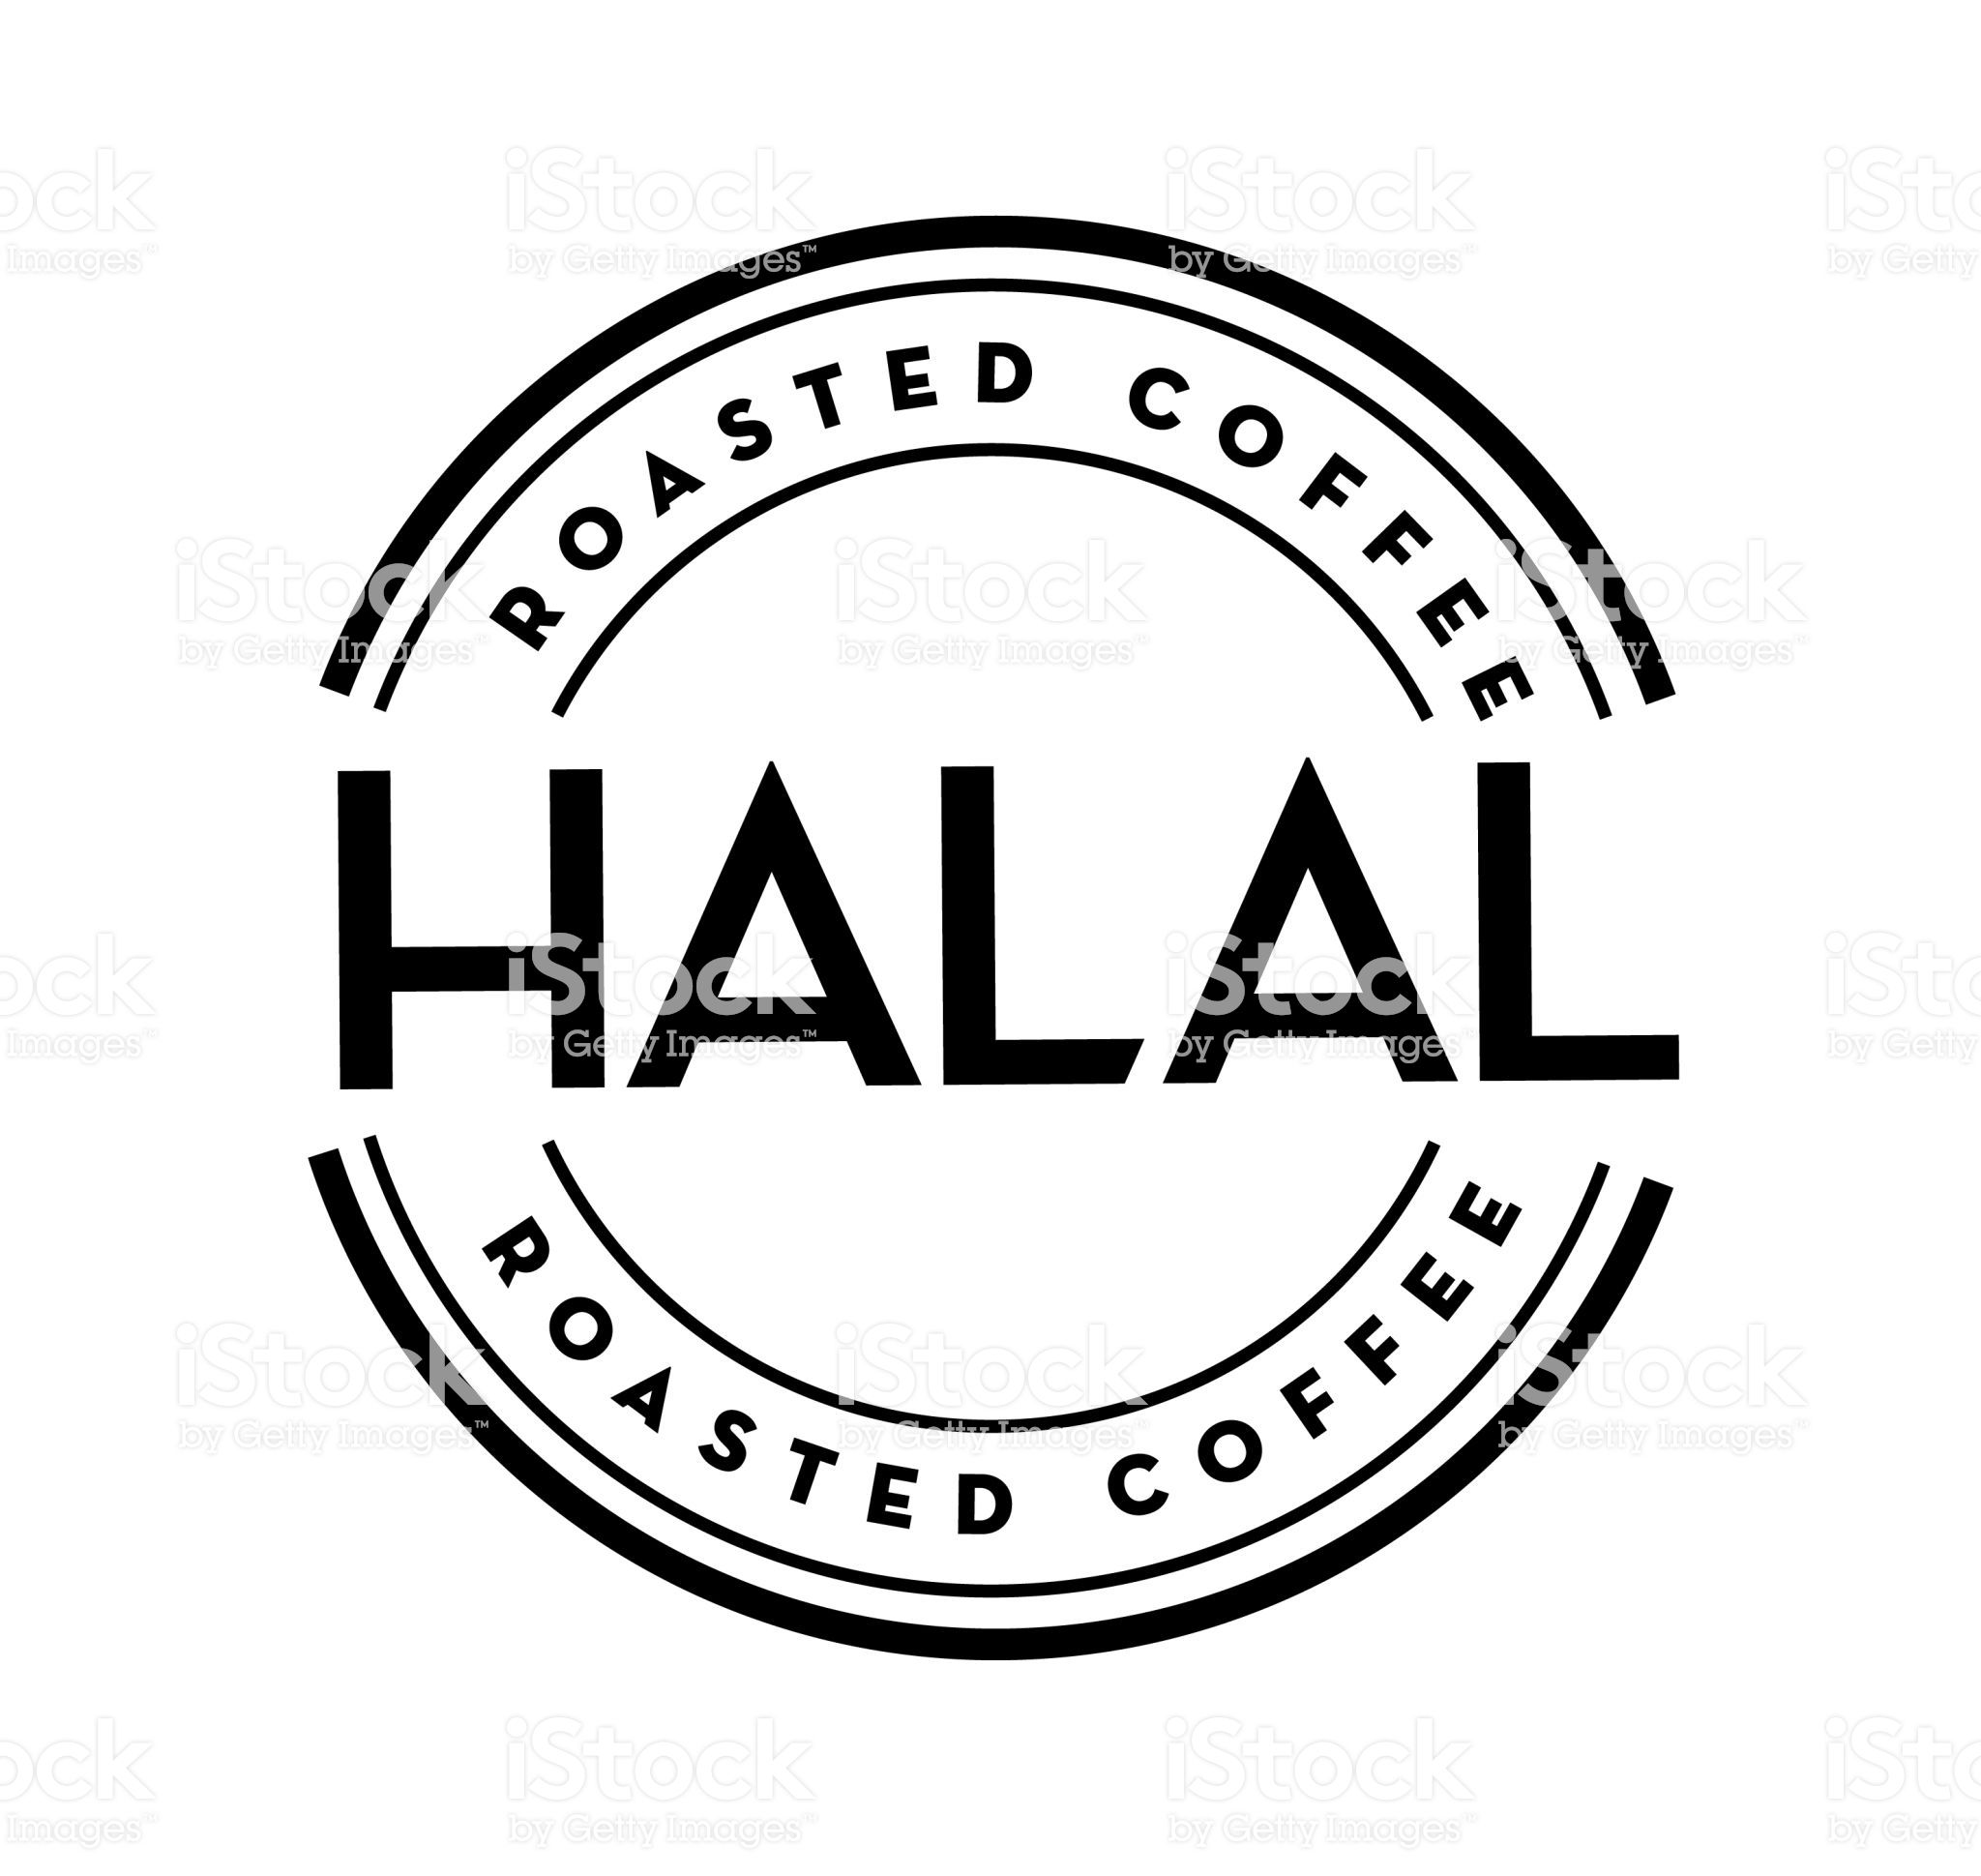 Vector illustration of a Coffee round label on coffee bean